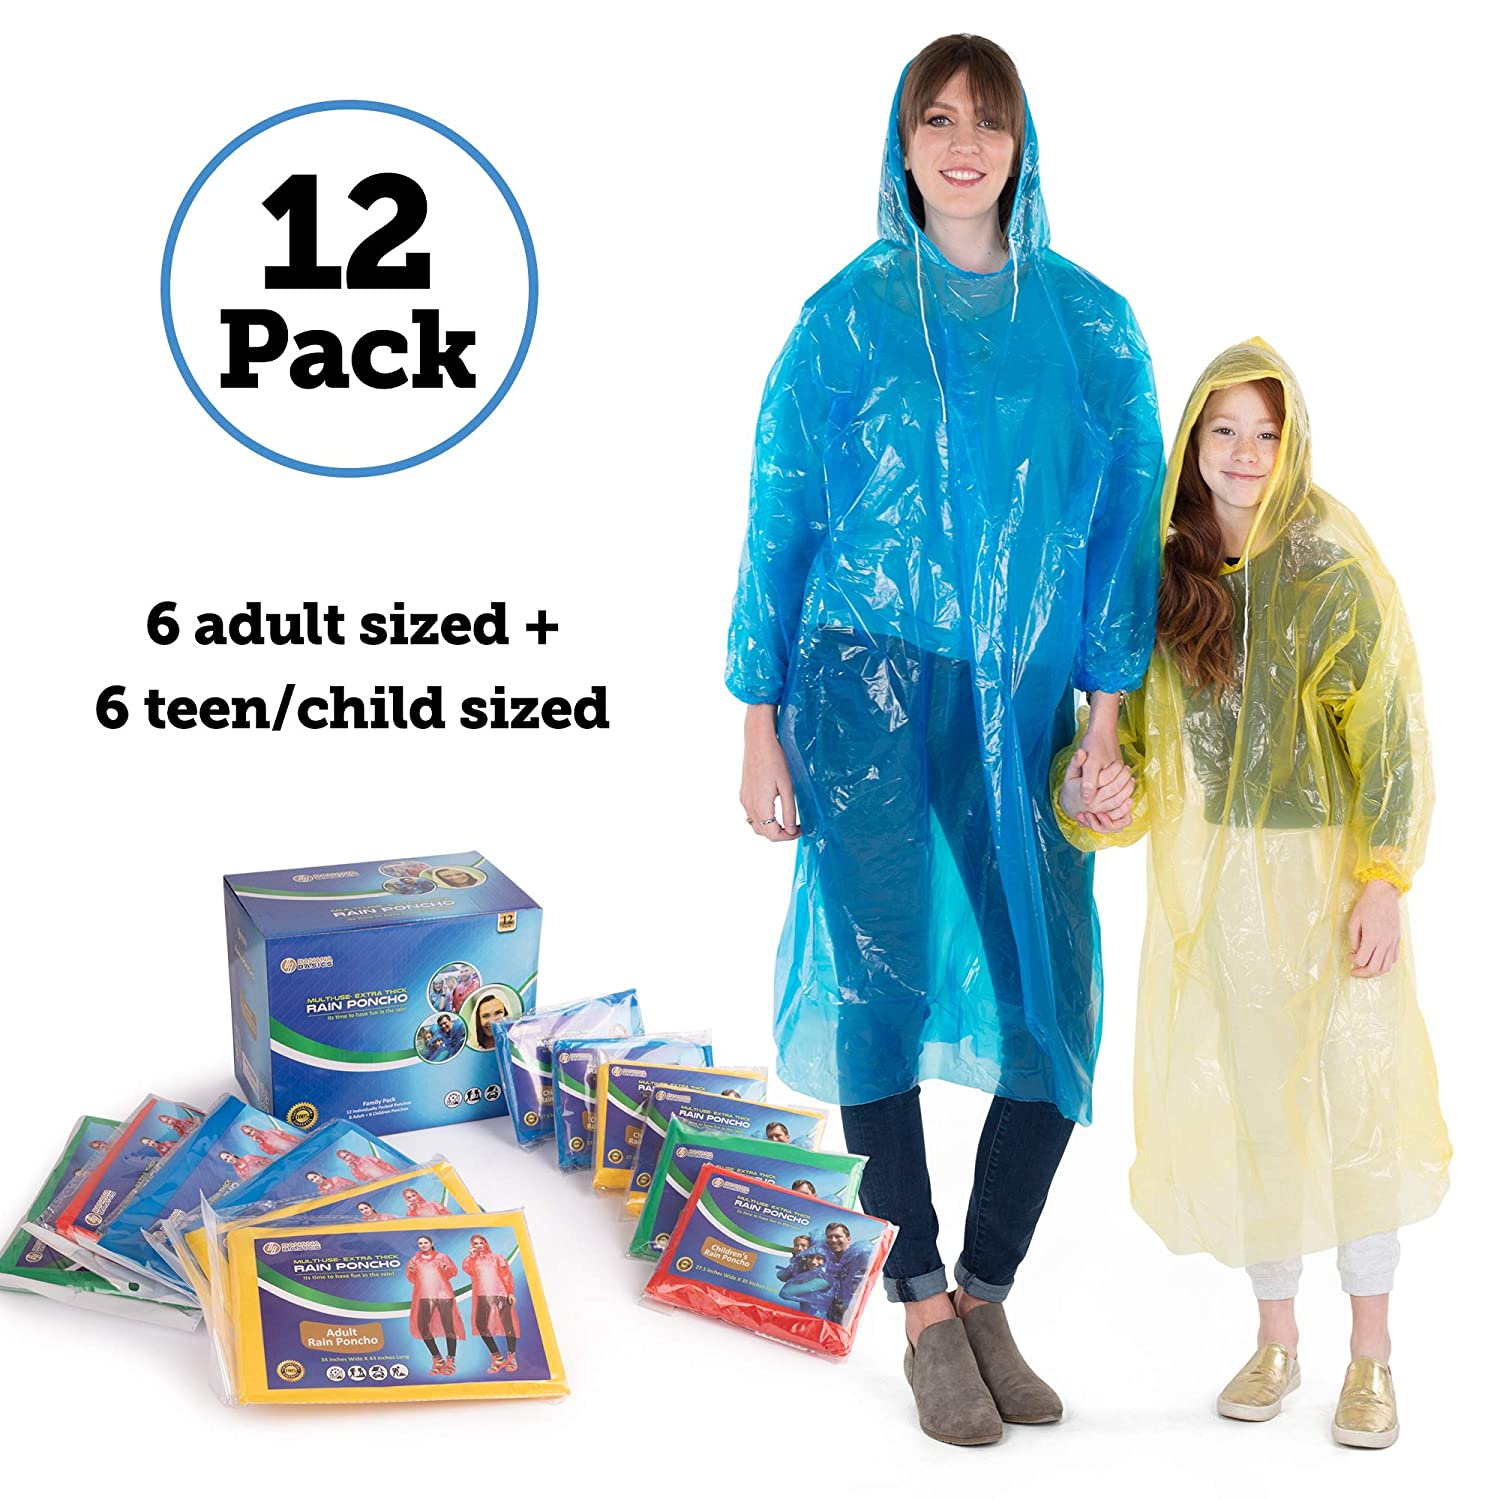 Banana Basics Extra Thick .03 mm Disposable Rain Ponchos (12-Count Family Pack) 6 Adult, 6 Child Sizes | Travel, Sports, Hiking, Outdoor Emergency Use | 100% Waterproof | Compact, Portable | Women Teens & Children (12 Pack) (12)